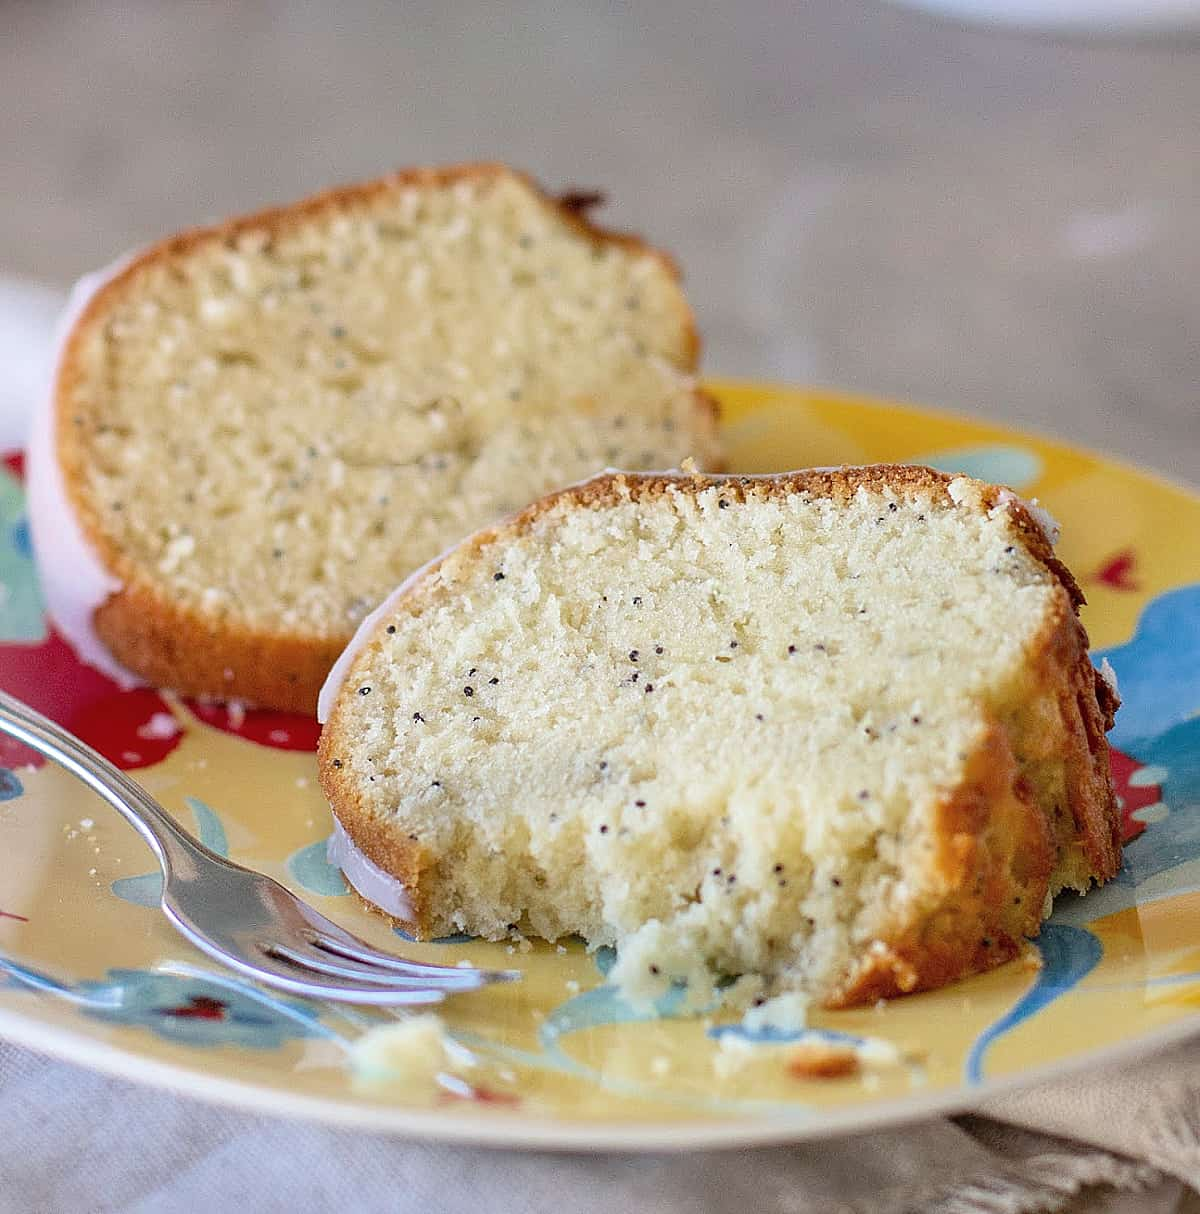 Close-up of slices of poppy seed bundt cake on a colorful plate, a silver fork, grey surface